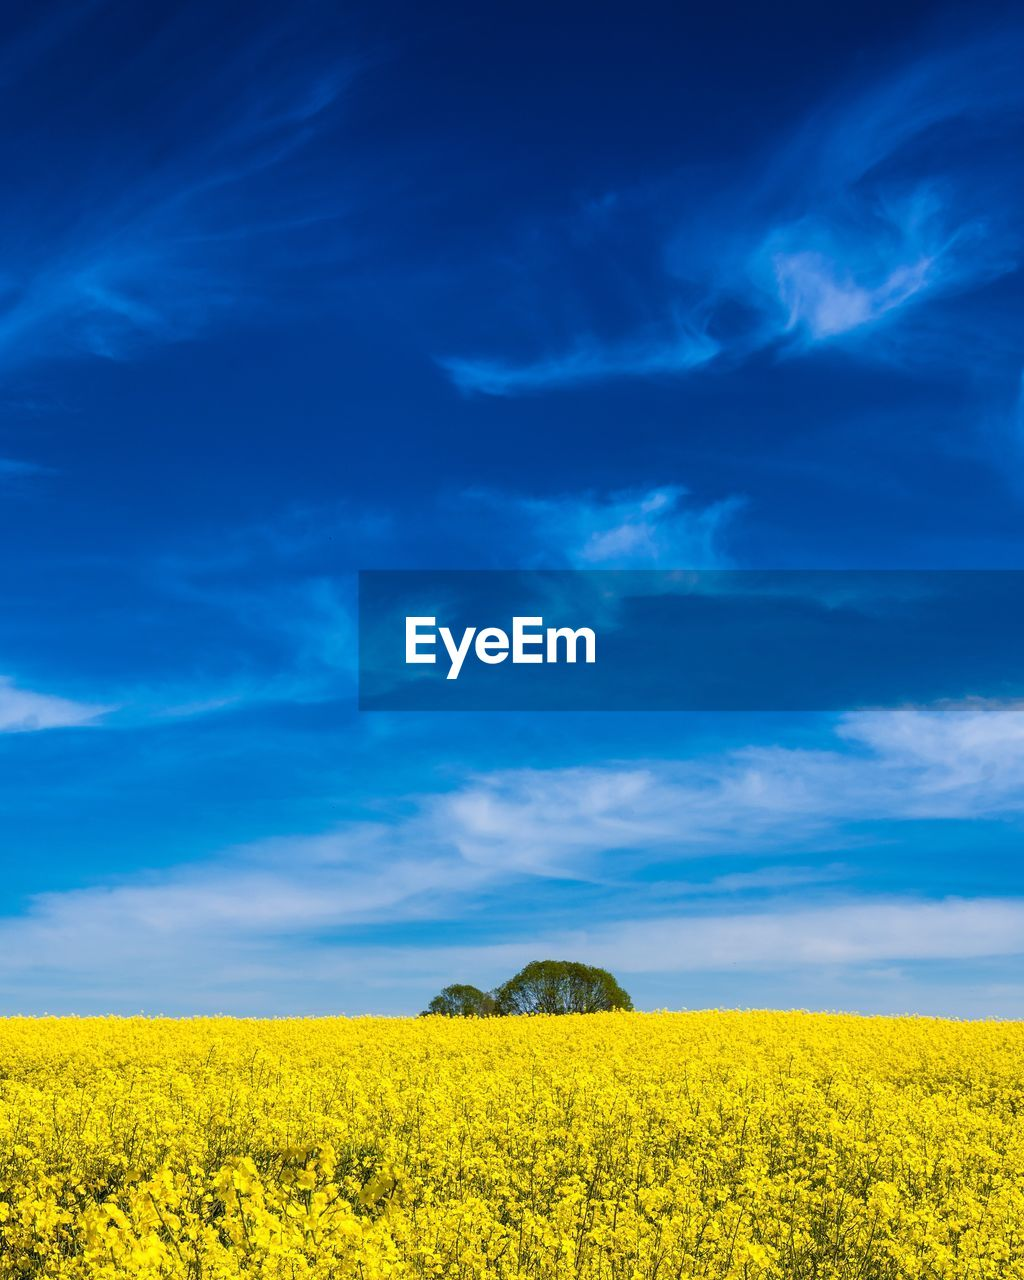 yellow, sky, beauty in nature, field, environment, landscape, cloud - sky, agriculture, land, tranquil scene, oilseed rape, tranquility, scenics - nature, growth, flower, plant, farm, blue, crop, rural scene, no people, outdoors, plantation